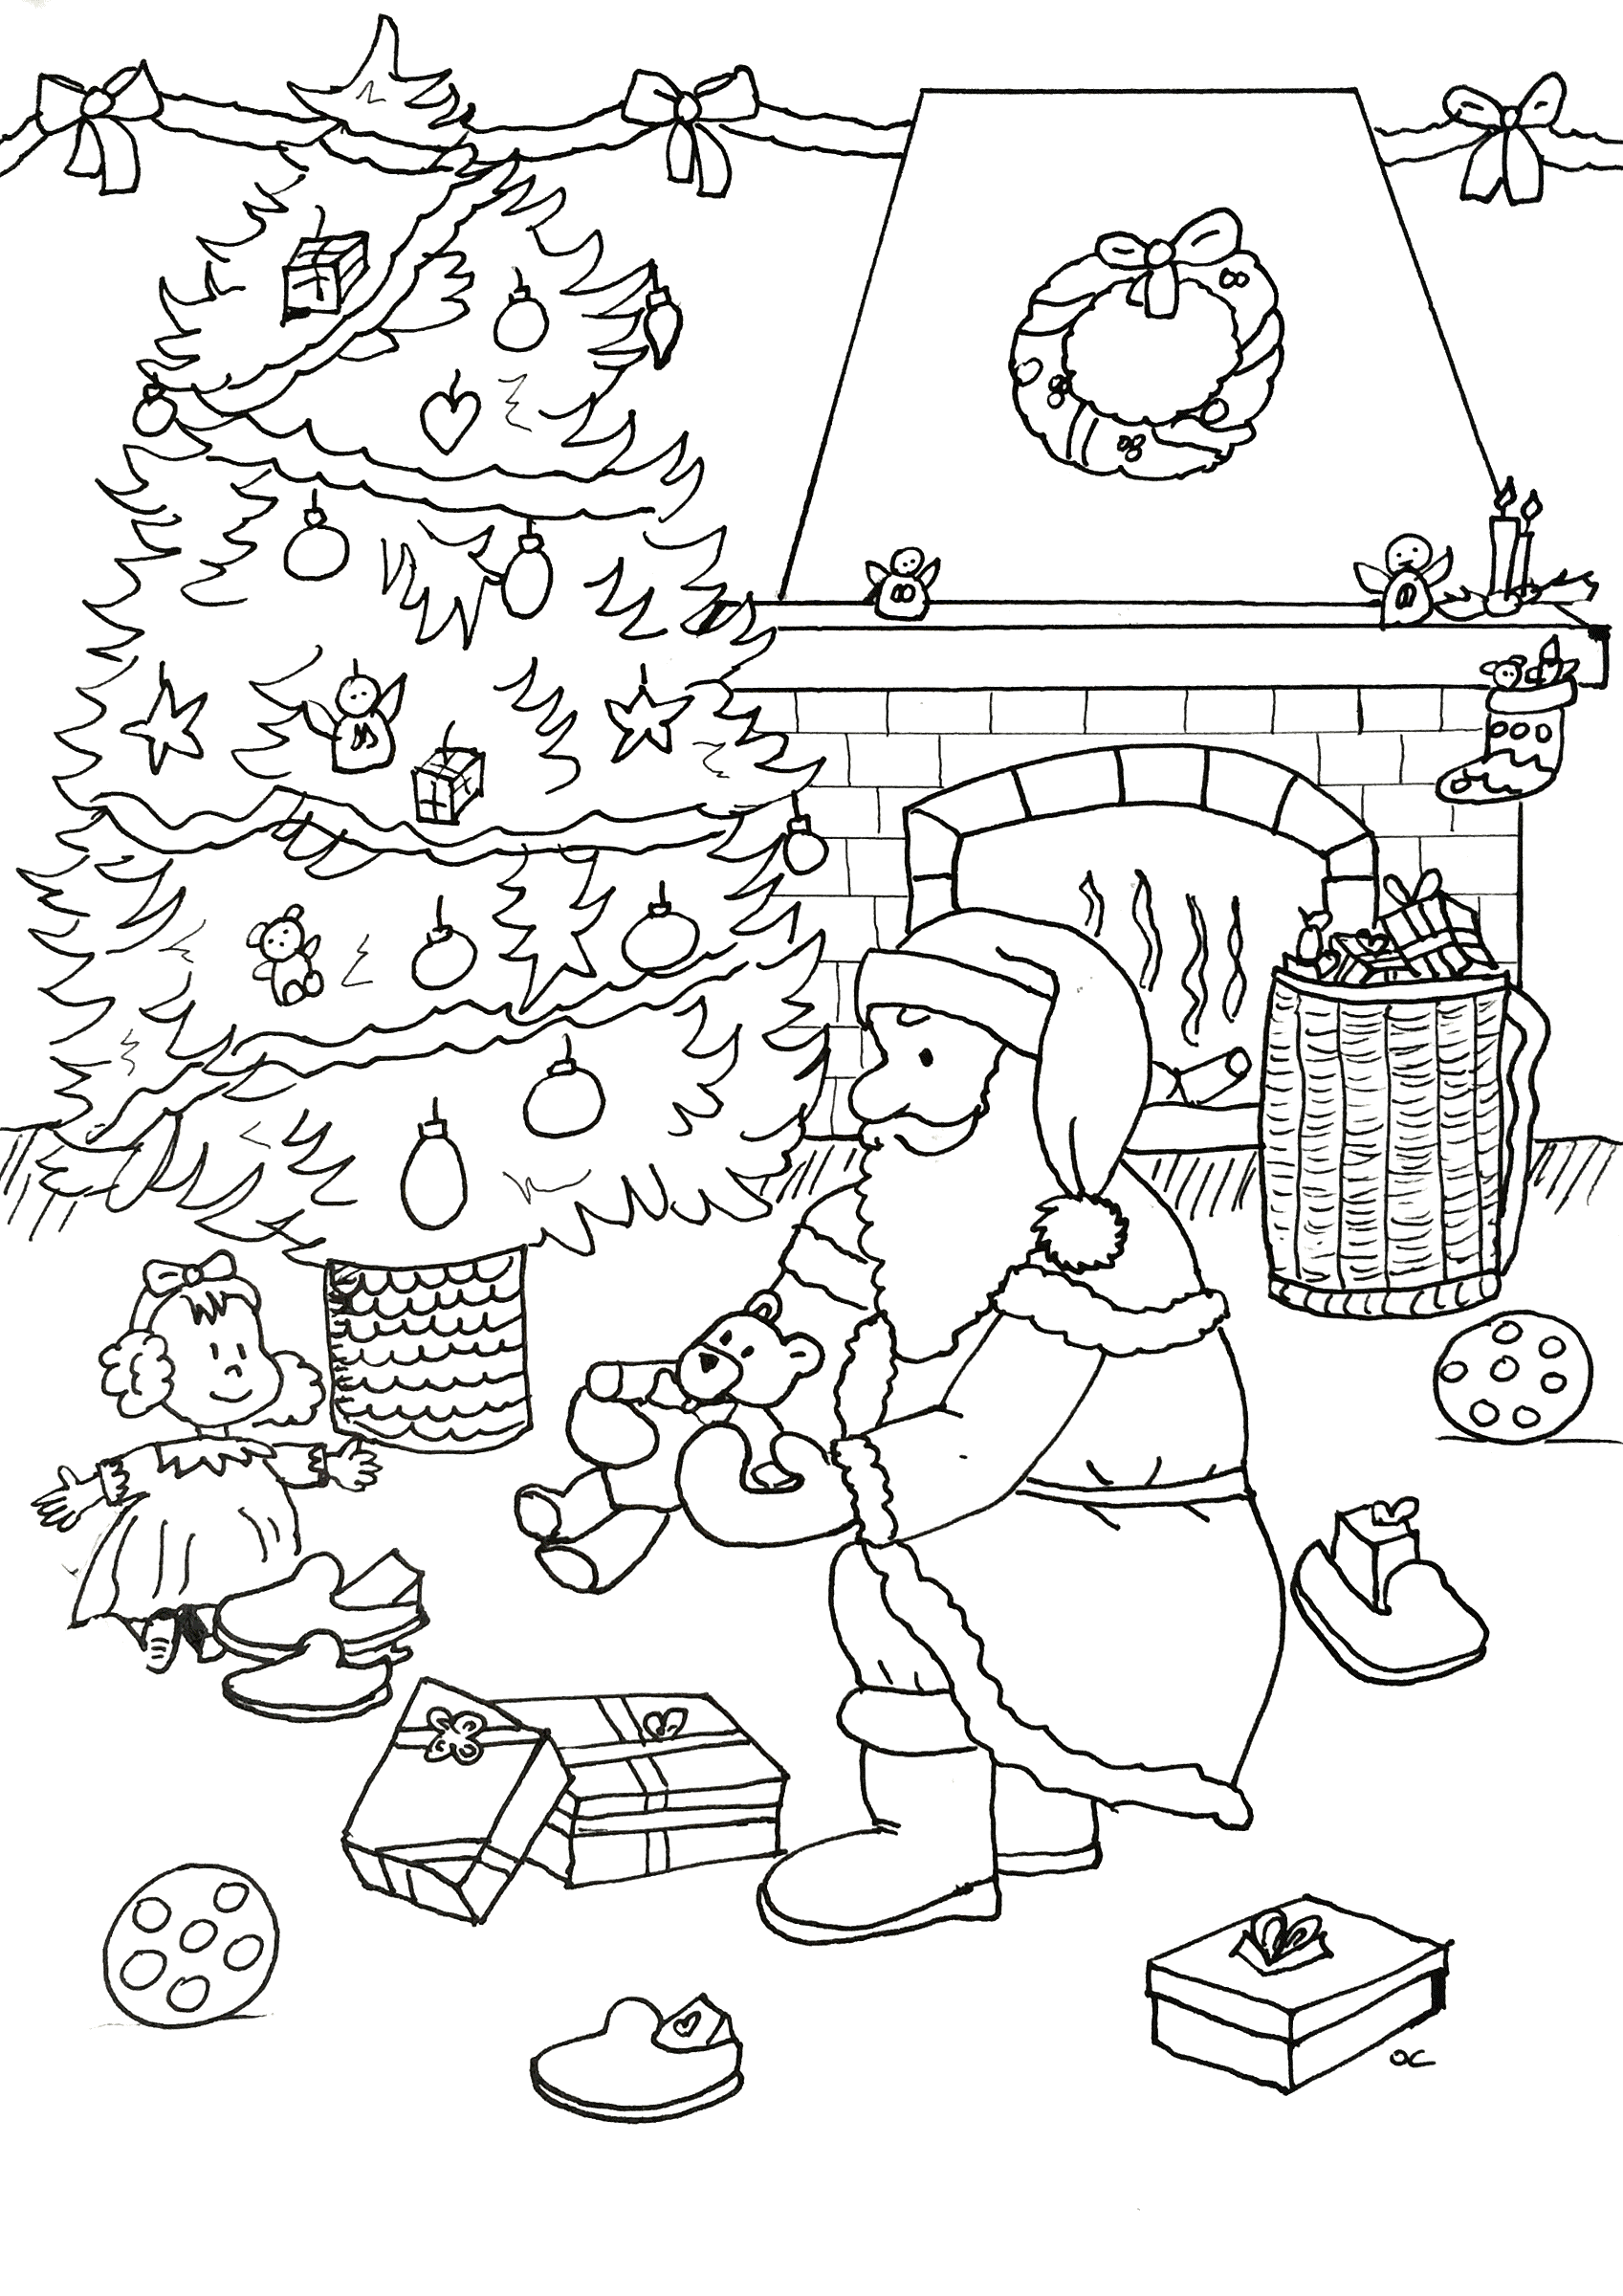 Santa Claus preparing gifts, Free Christmas coloring page for children, by Olivier